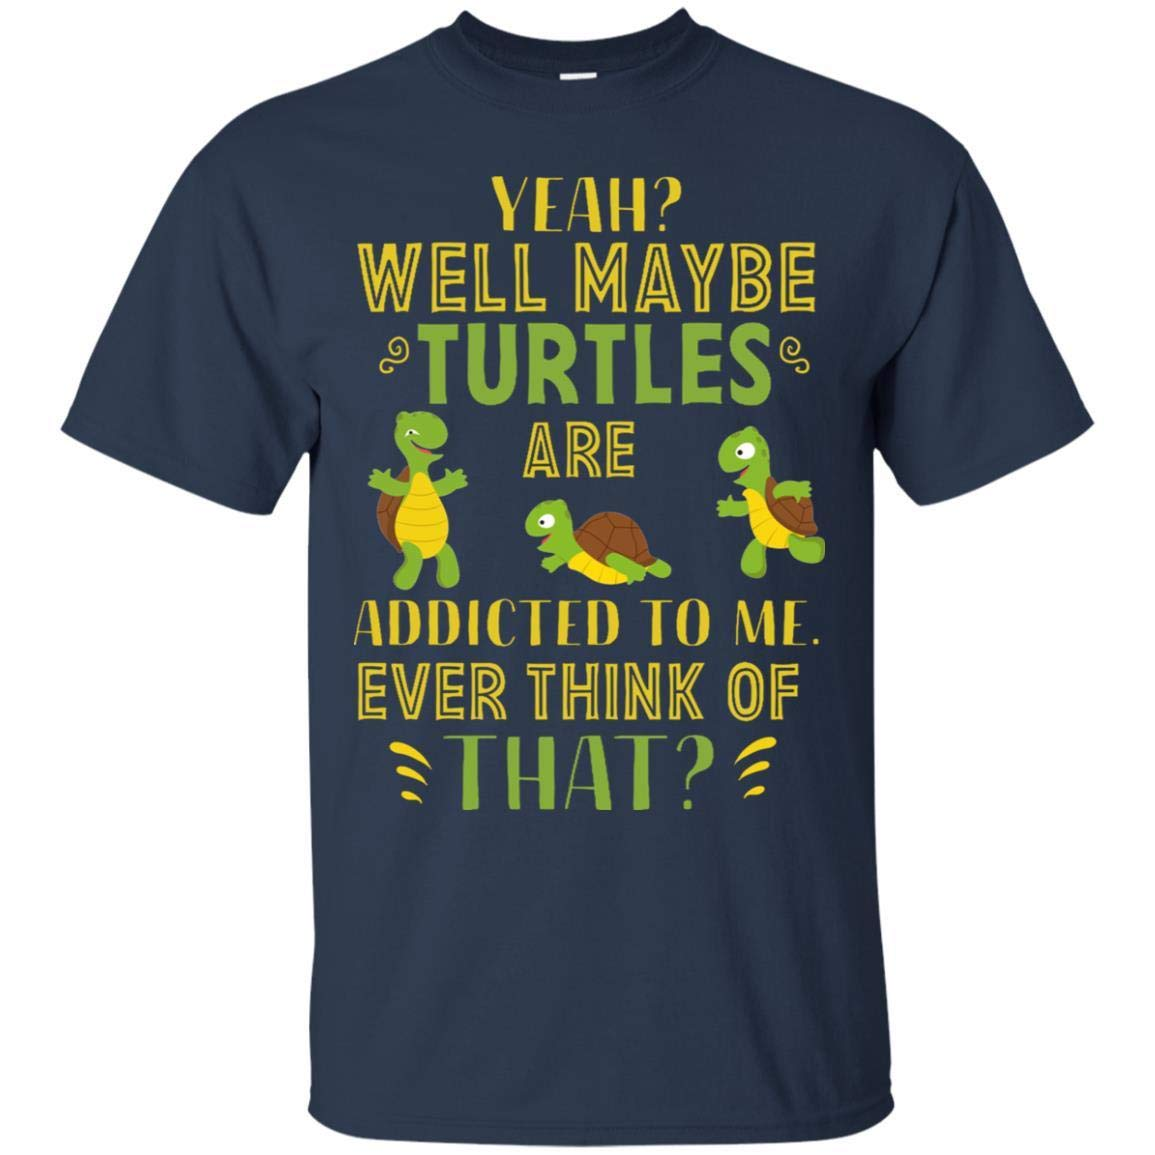 Teelesto Yeah Well Maybe Turtles are Addicted to Me Ever Think of That Shirt